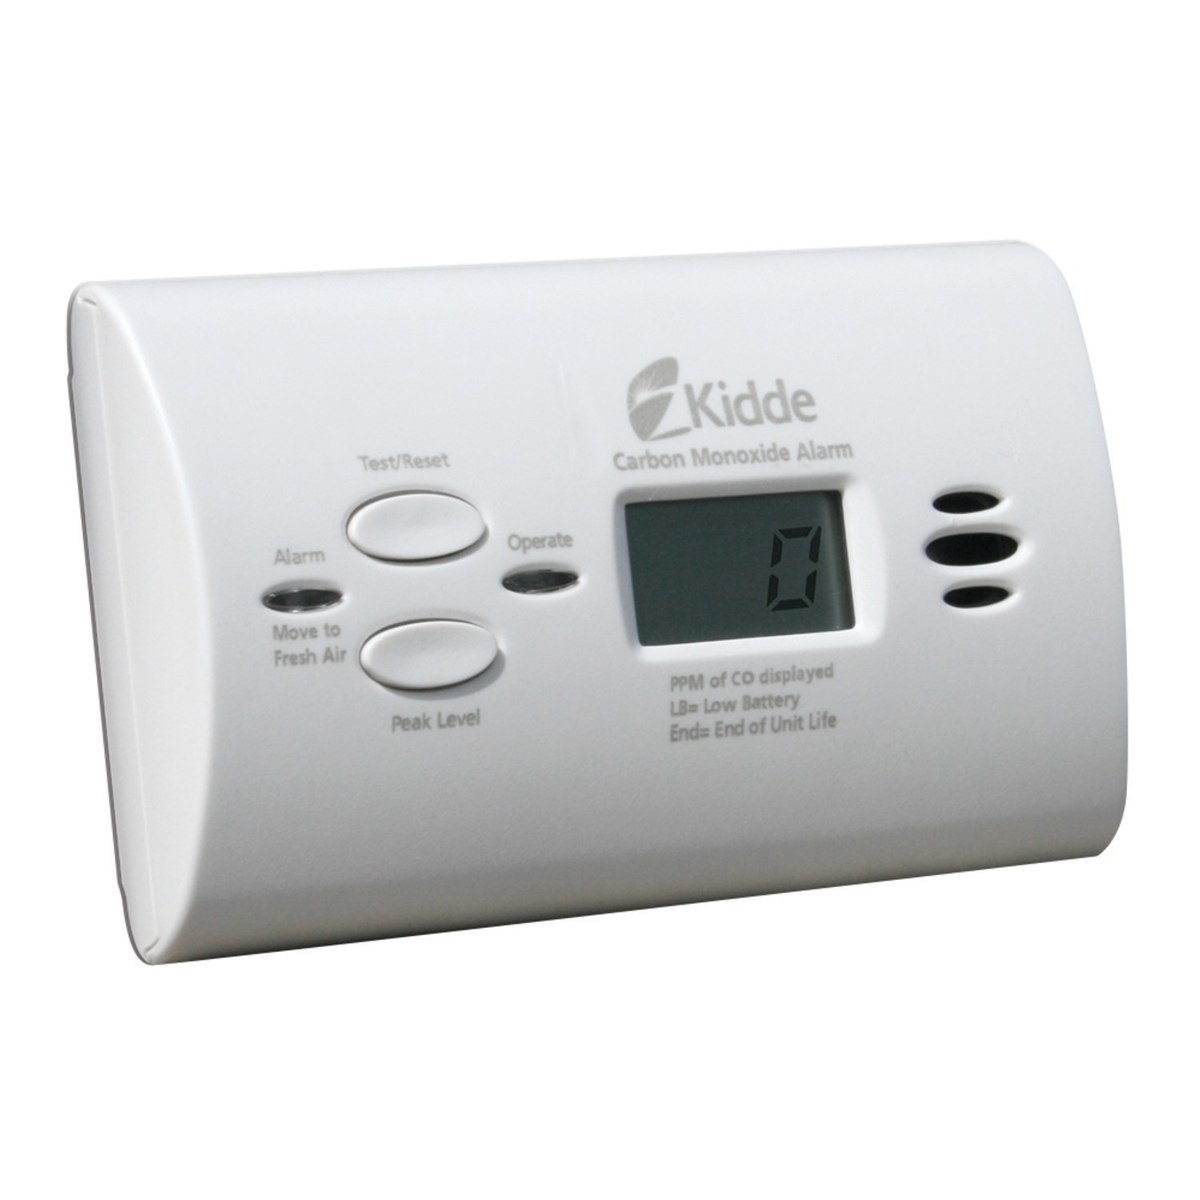 Kidde Launches Beat The Beep Urging California Residents To Replace Expired Carbon Monoxide Alarms Firehouse